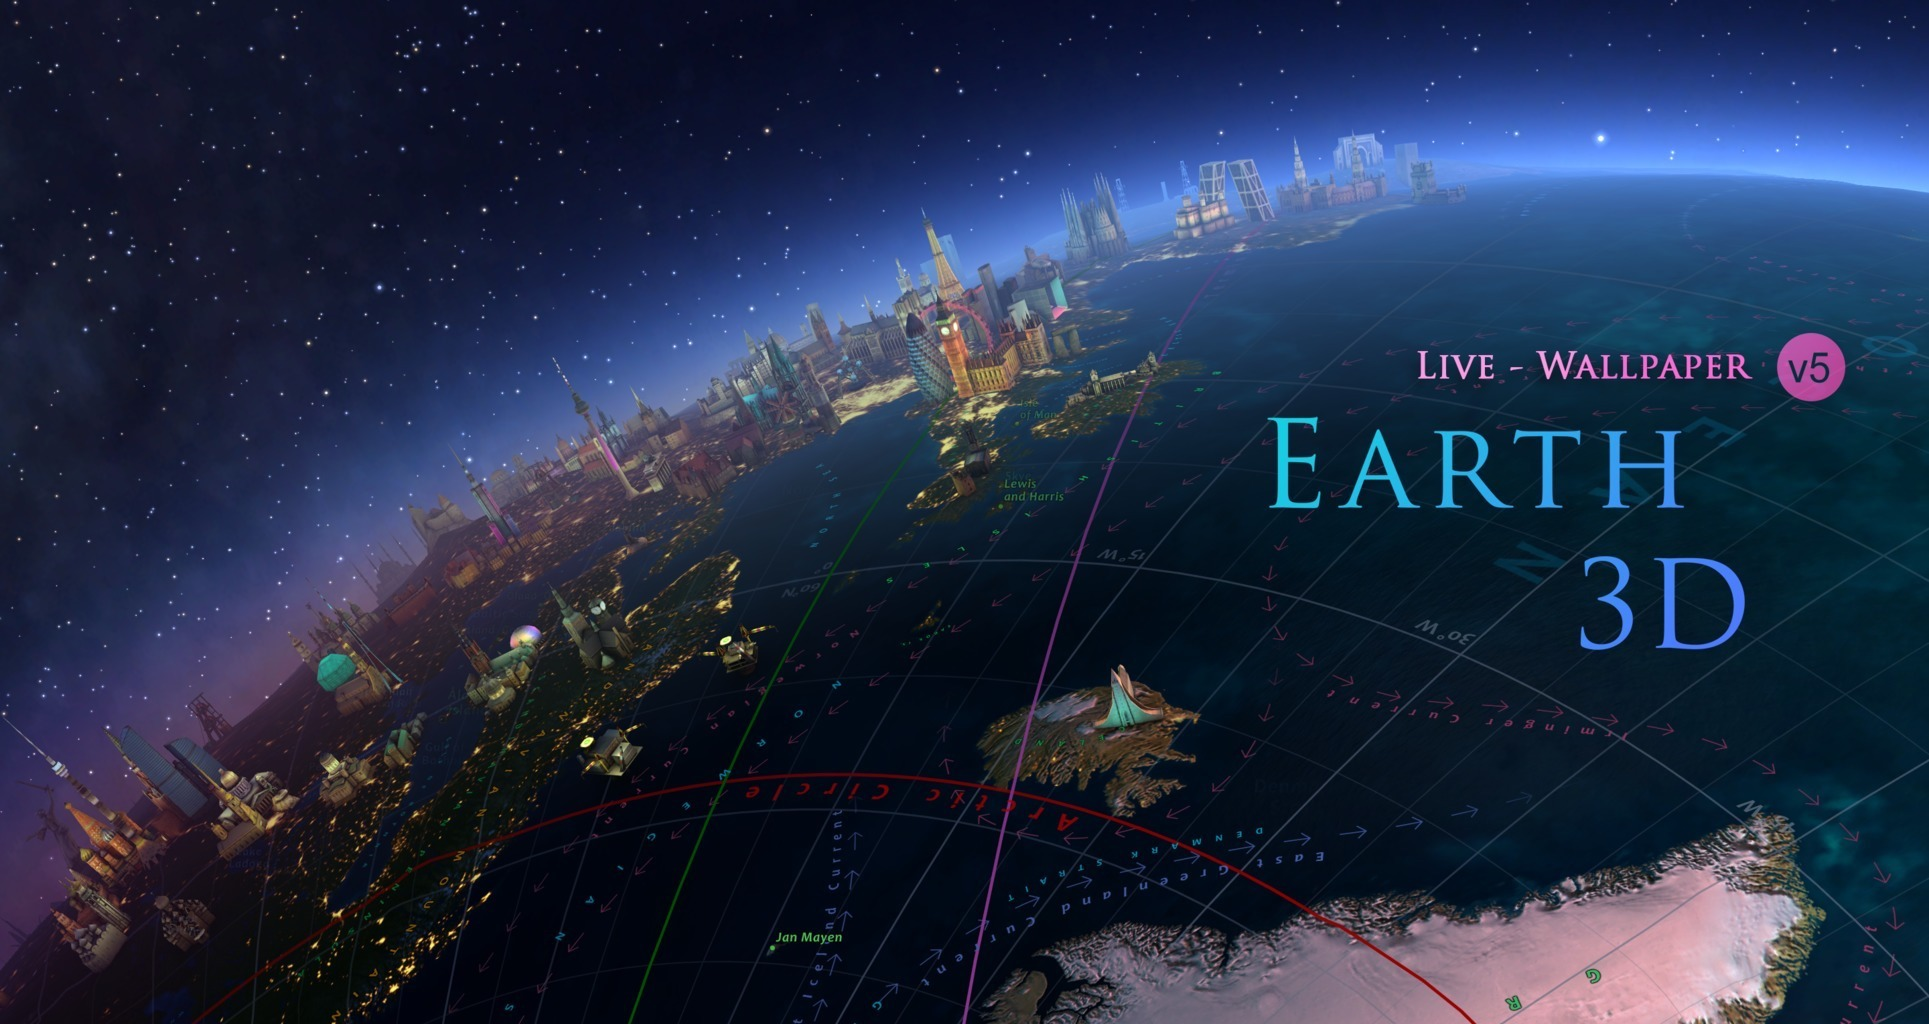 Live wallpaper app Earth 3D for Mac has now dropped down to just $1 (Reg. $3)